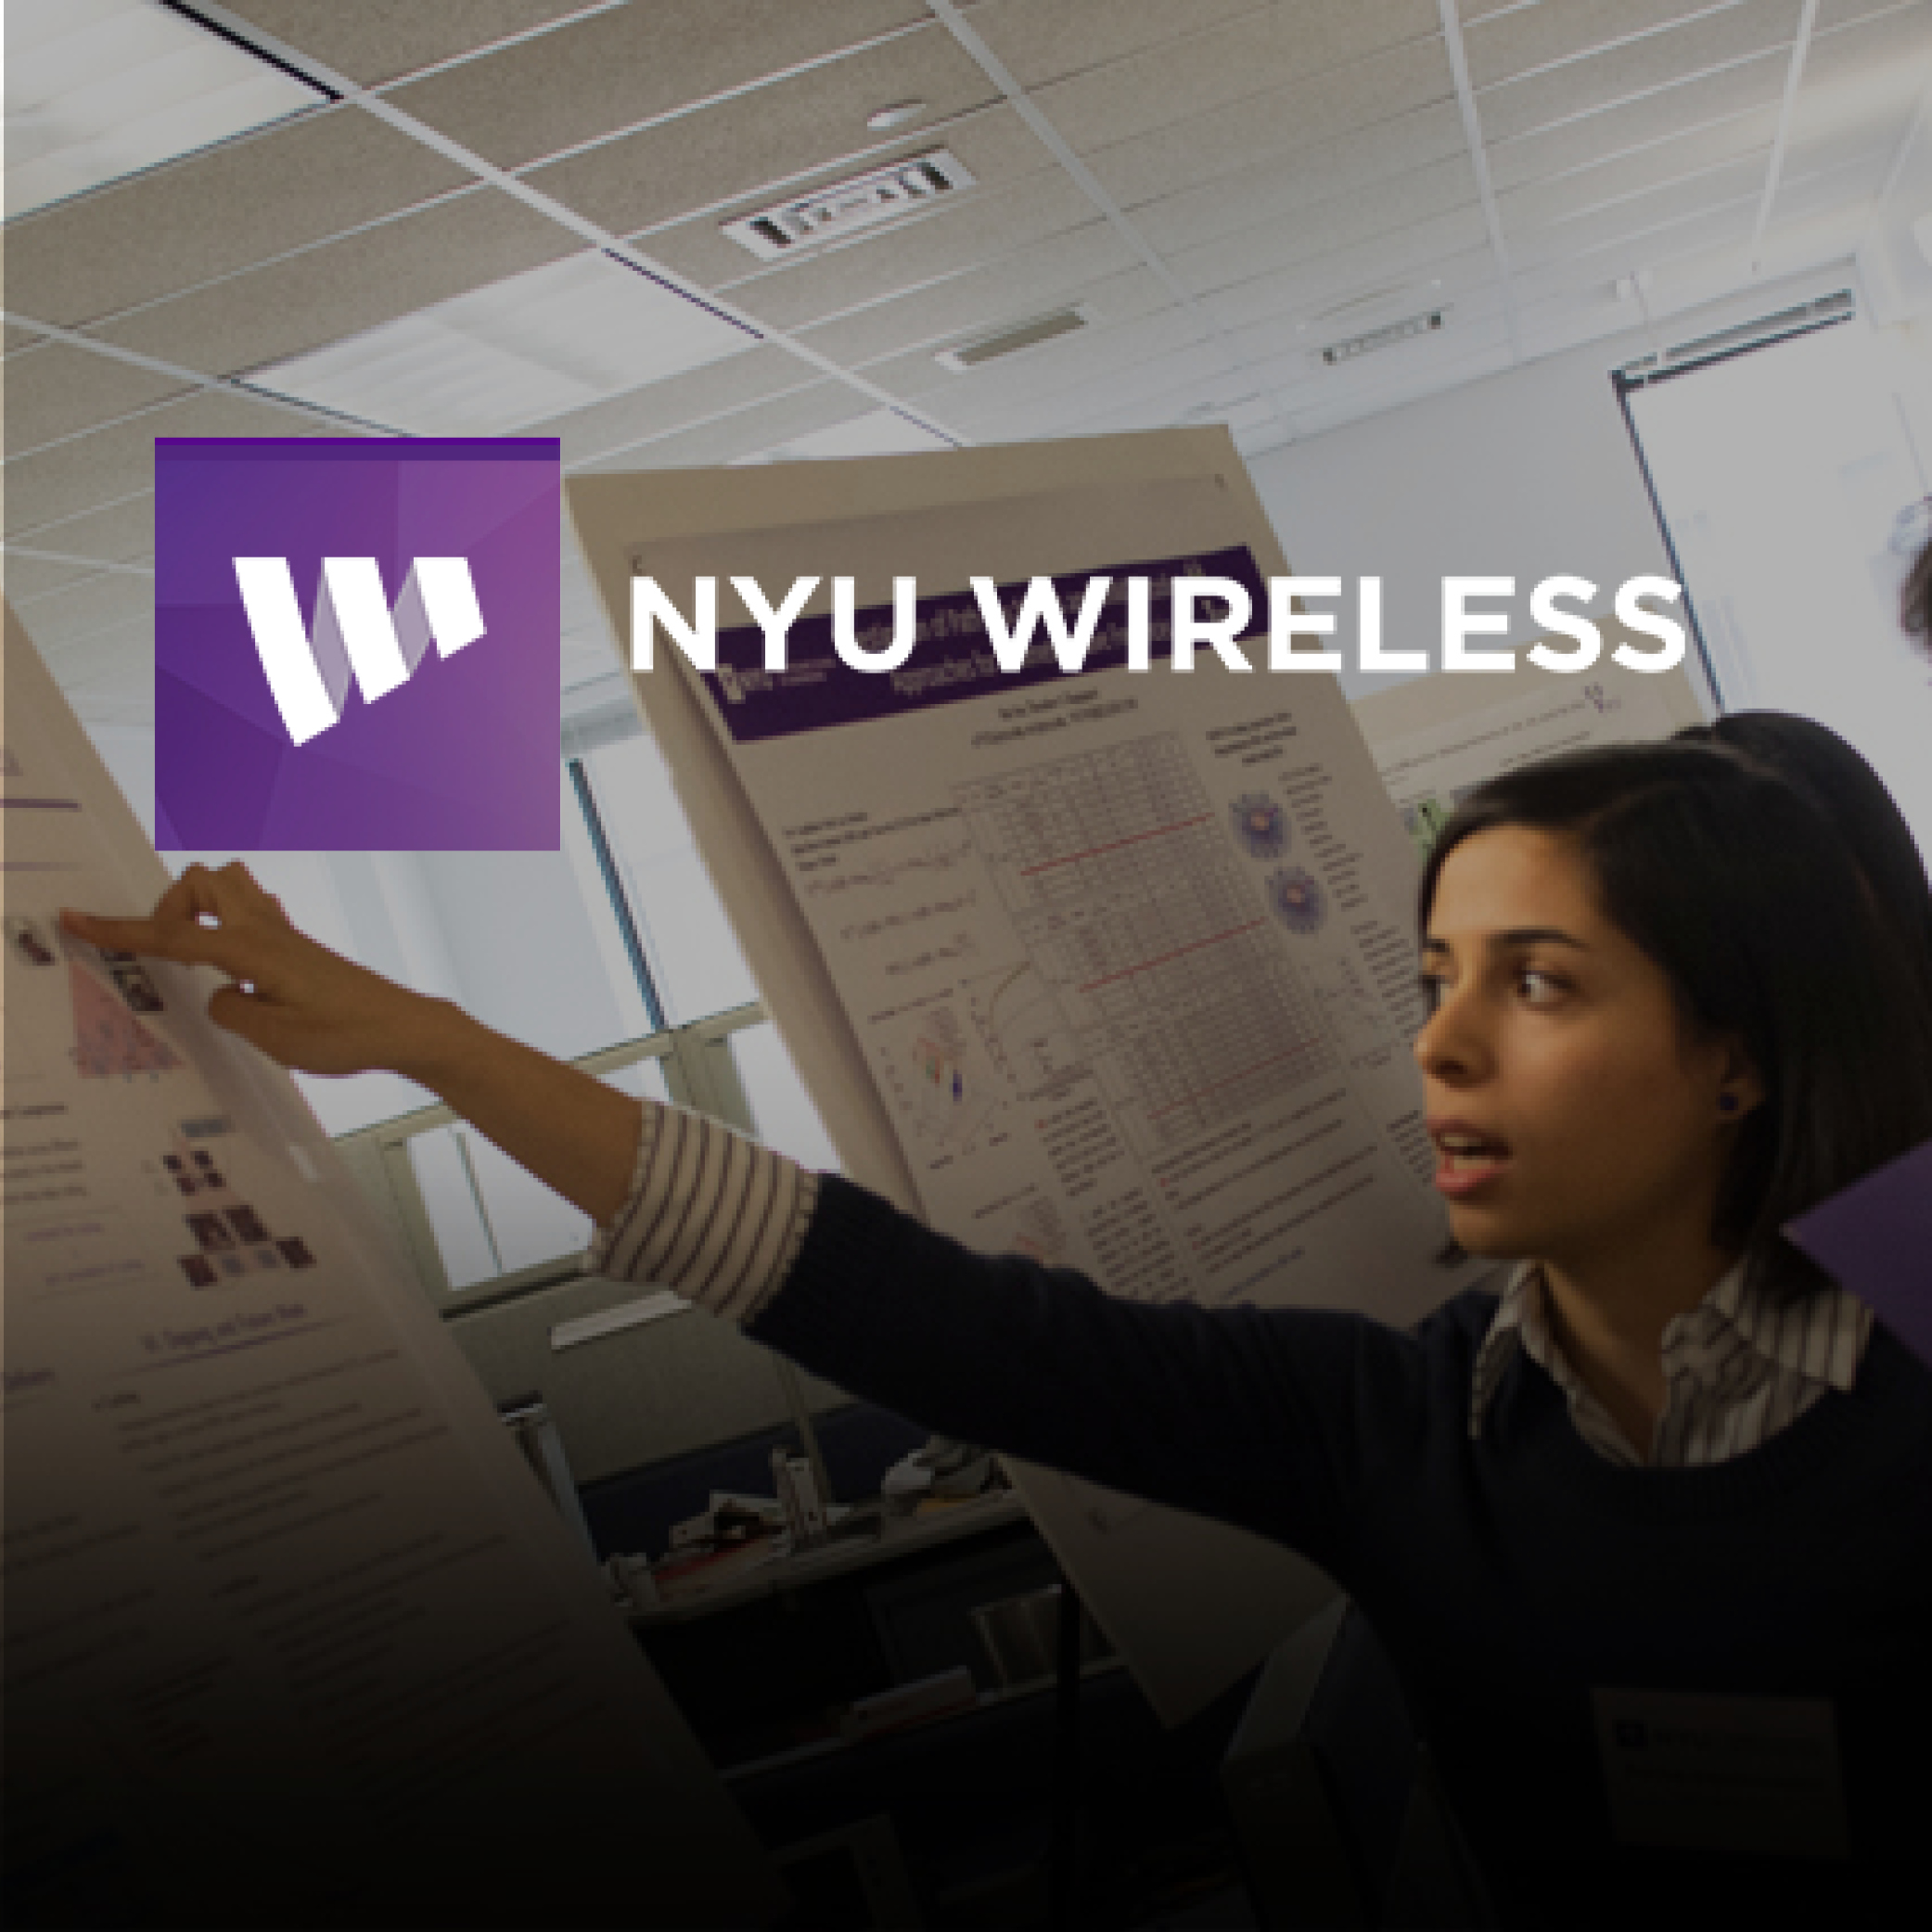 NYU WIRELESS